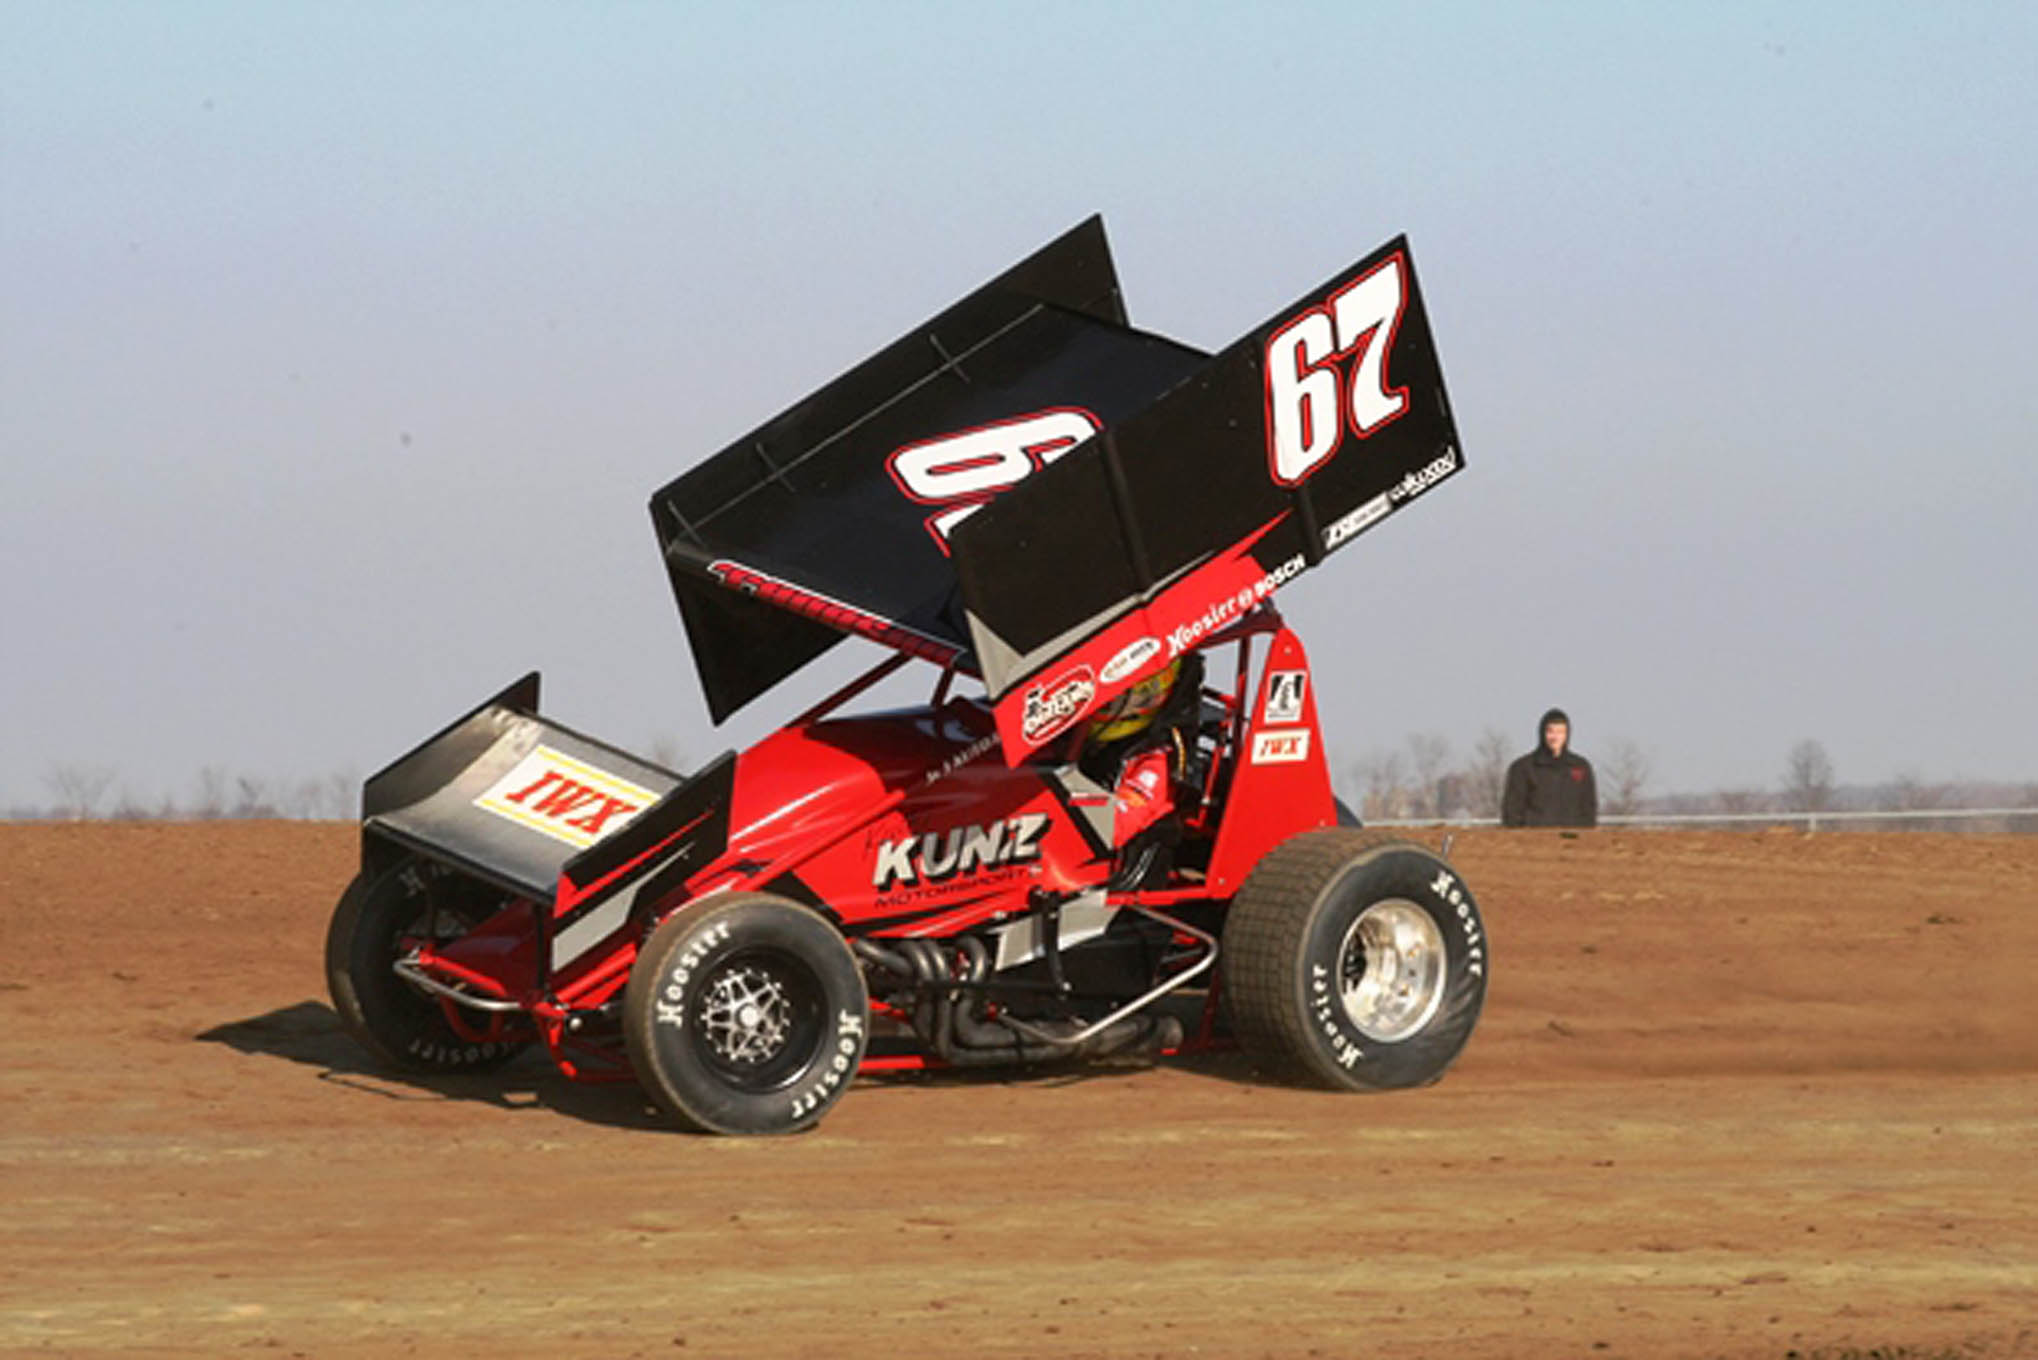 Tanner Thorson was on hand for the opener at Attica.